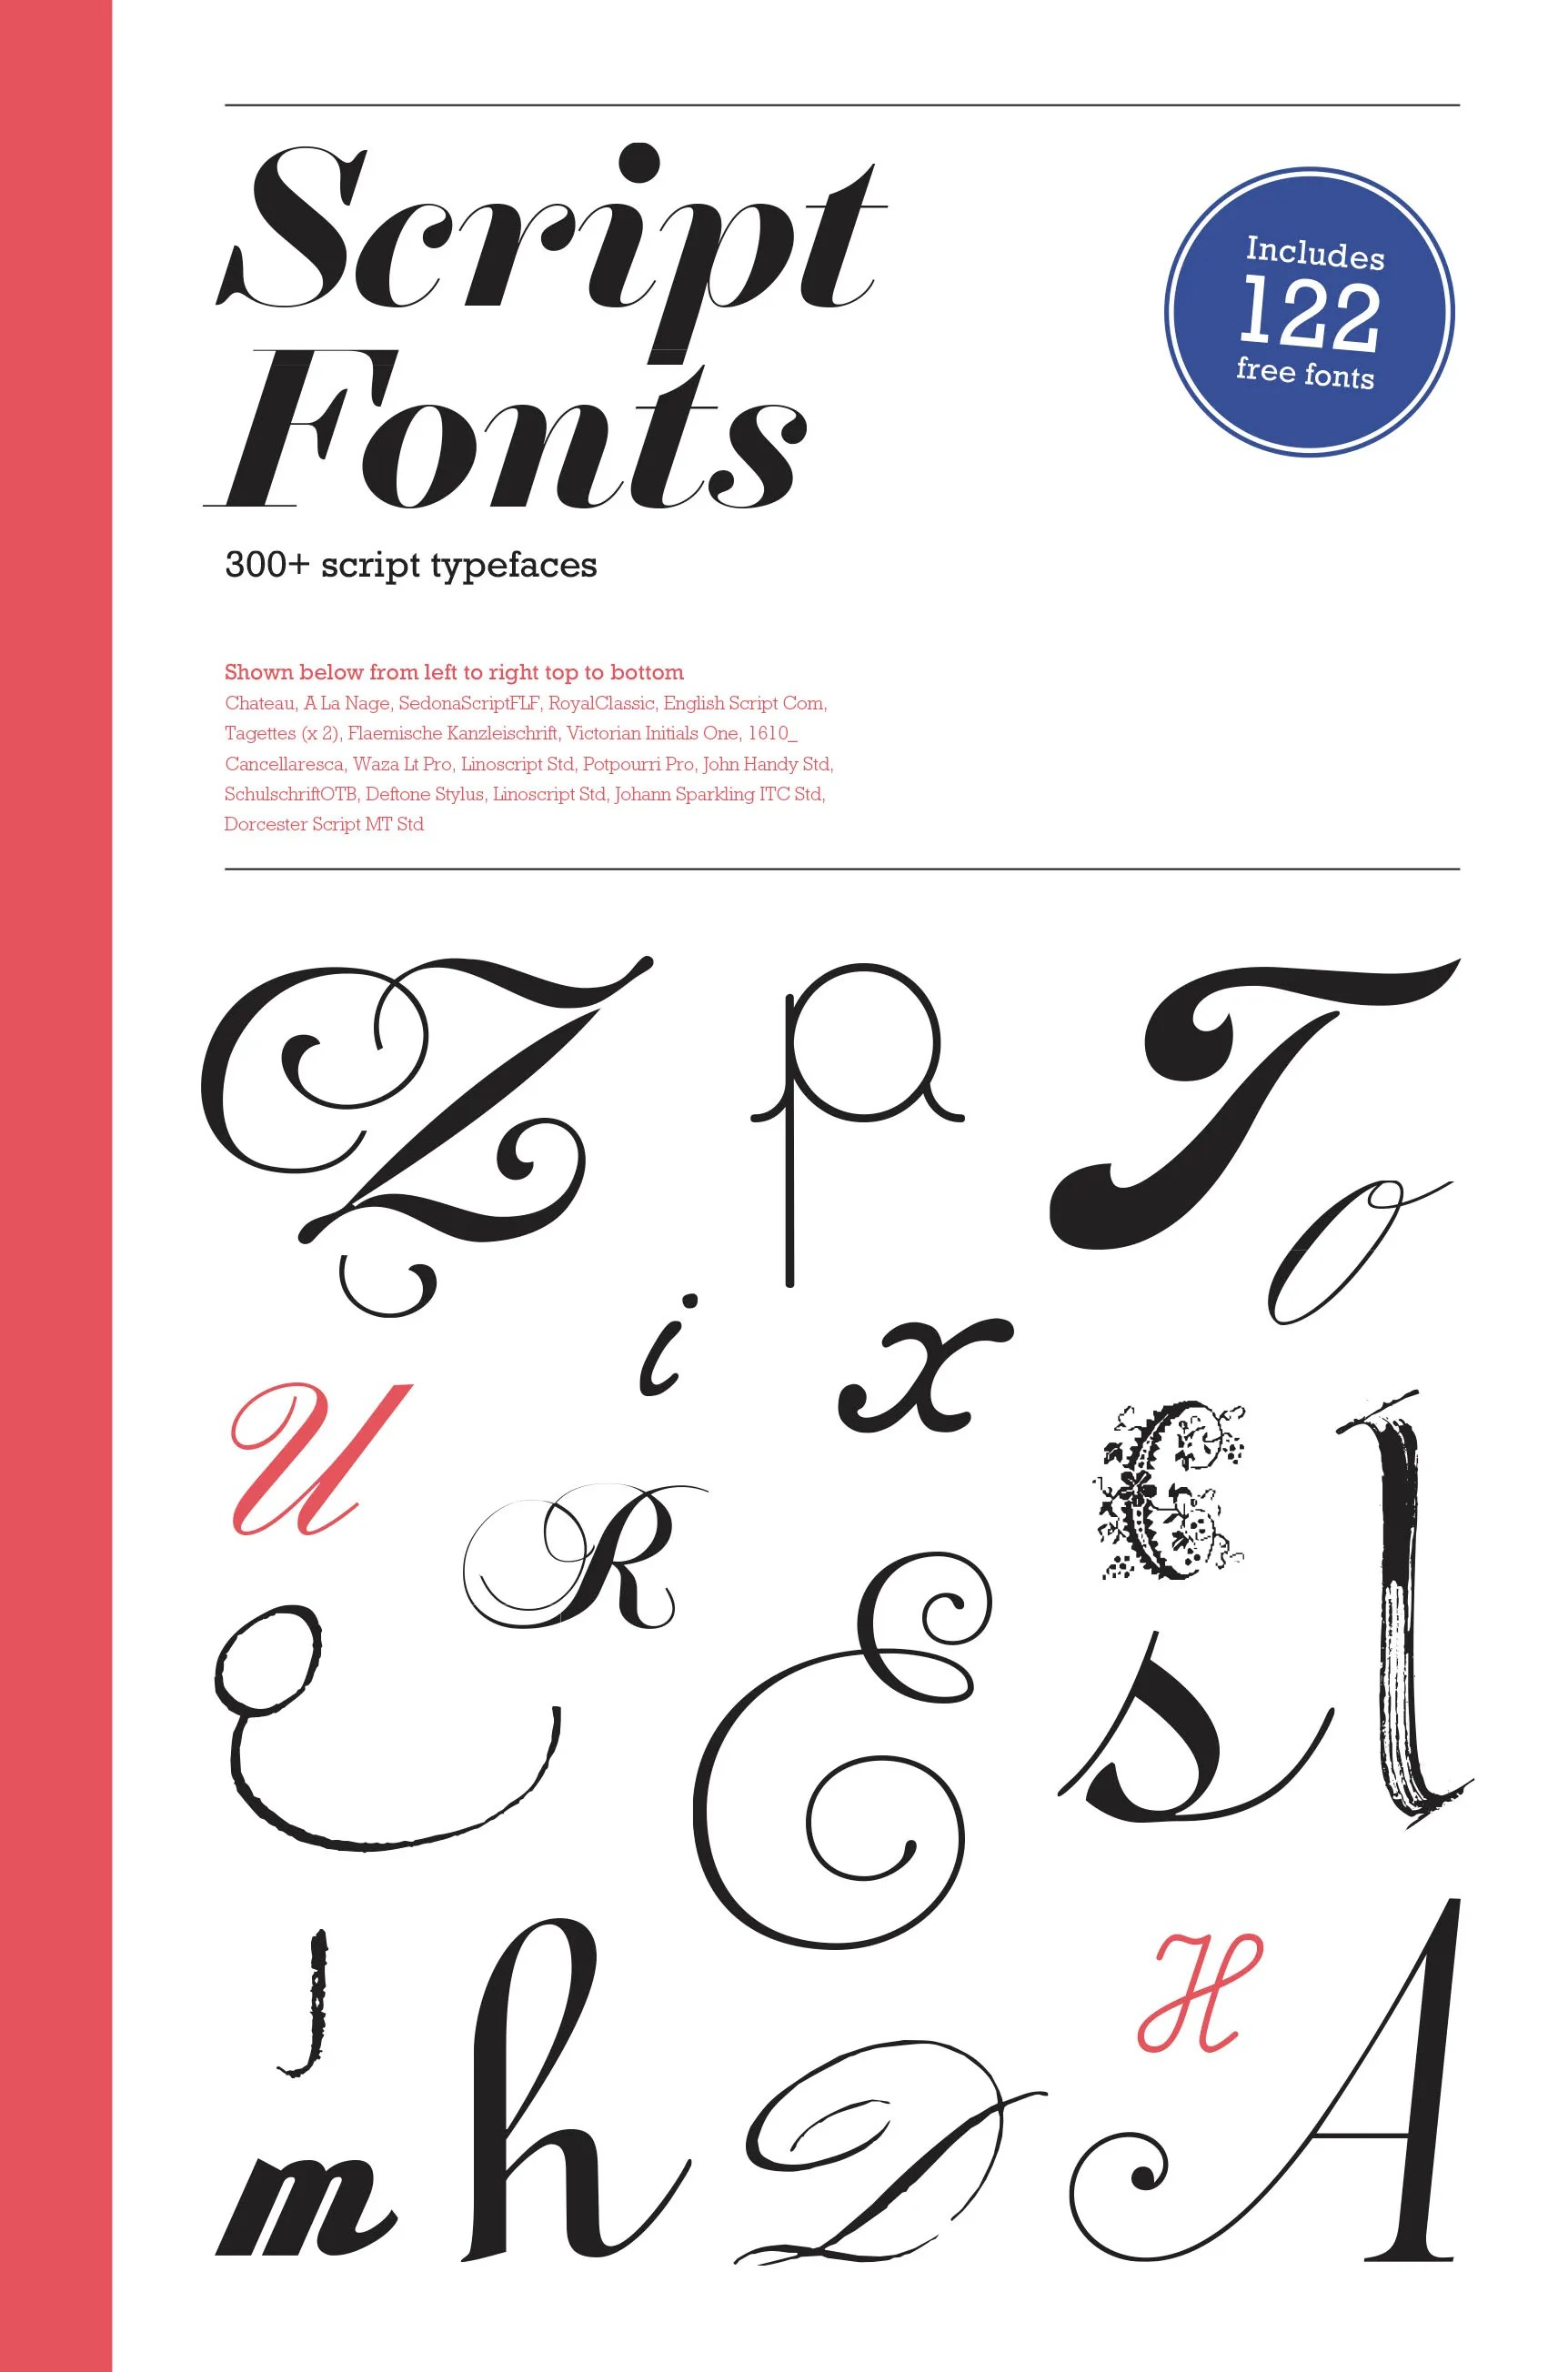 Calligraphy Fonts Victorian A Guide To The Beautiful Elaborate Jungle Of Script Typefaces